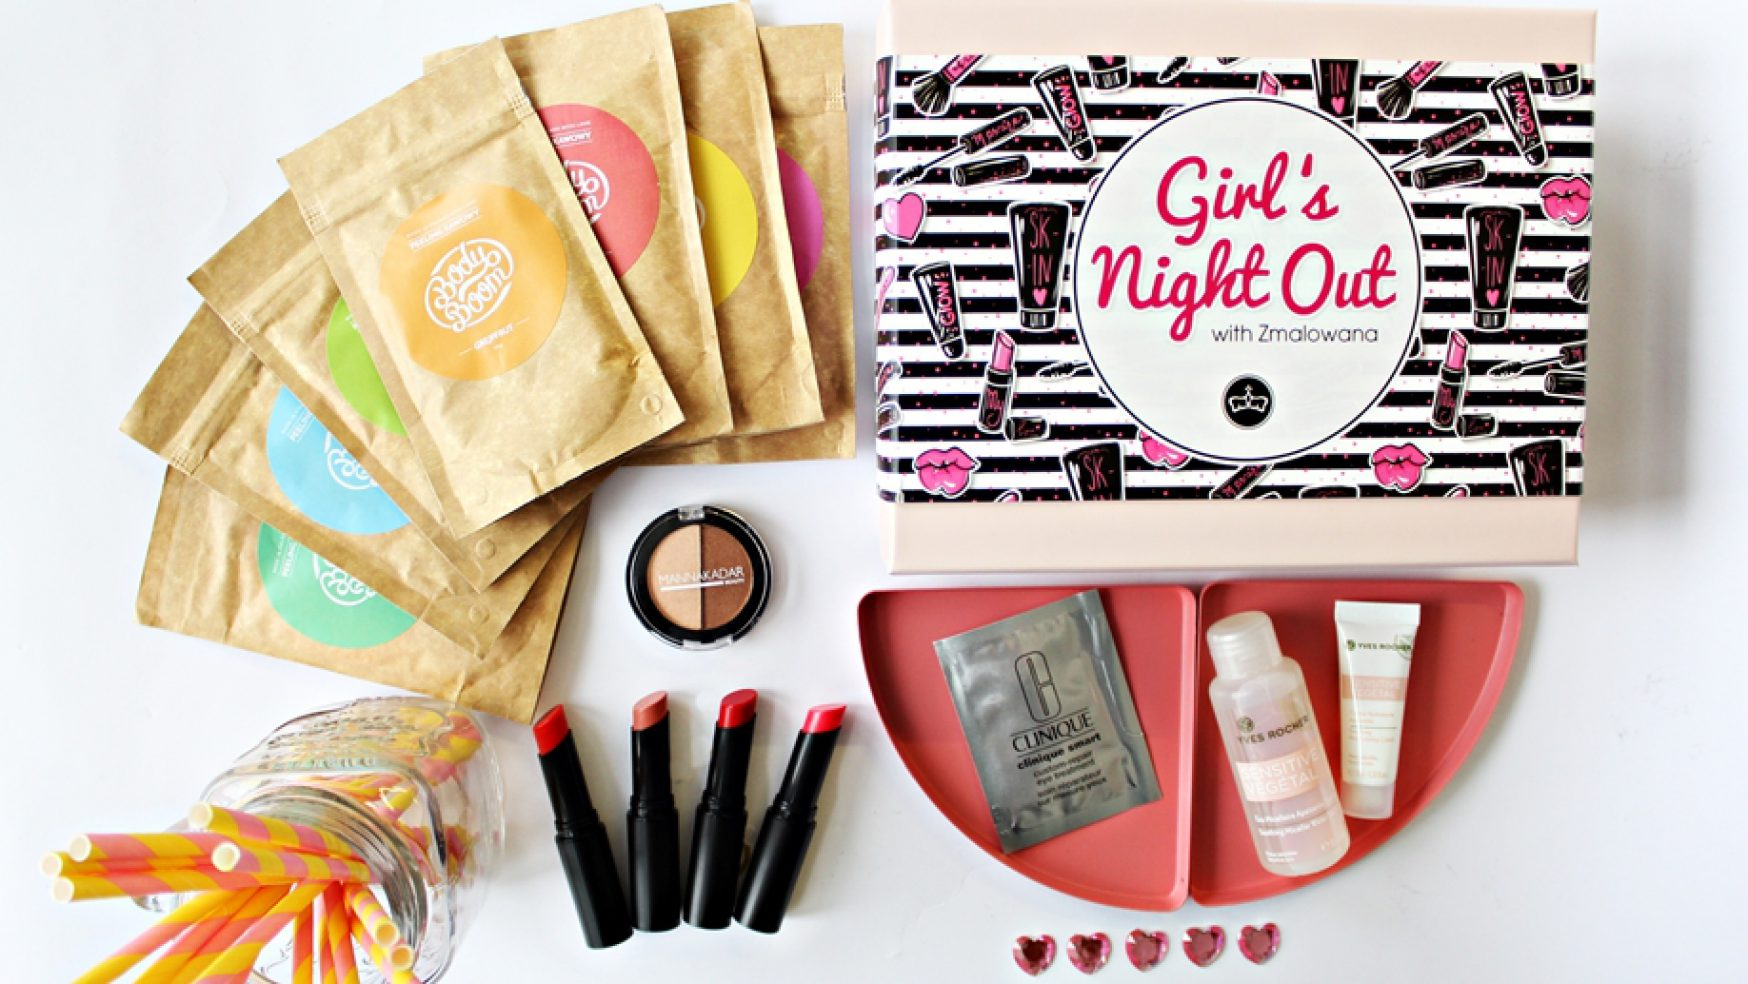 beGLOSSY Girl's Night Out with Zmalowana